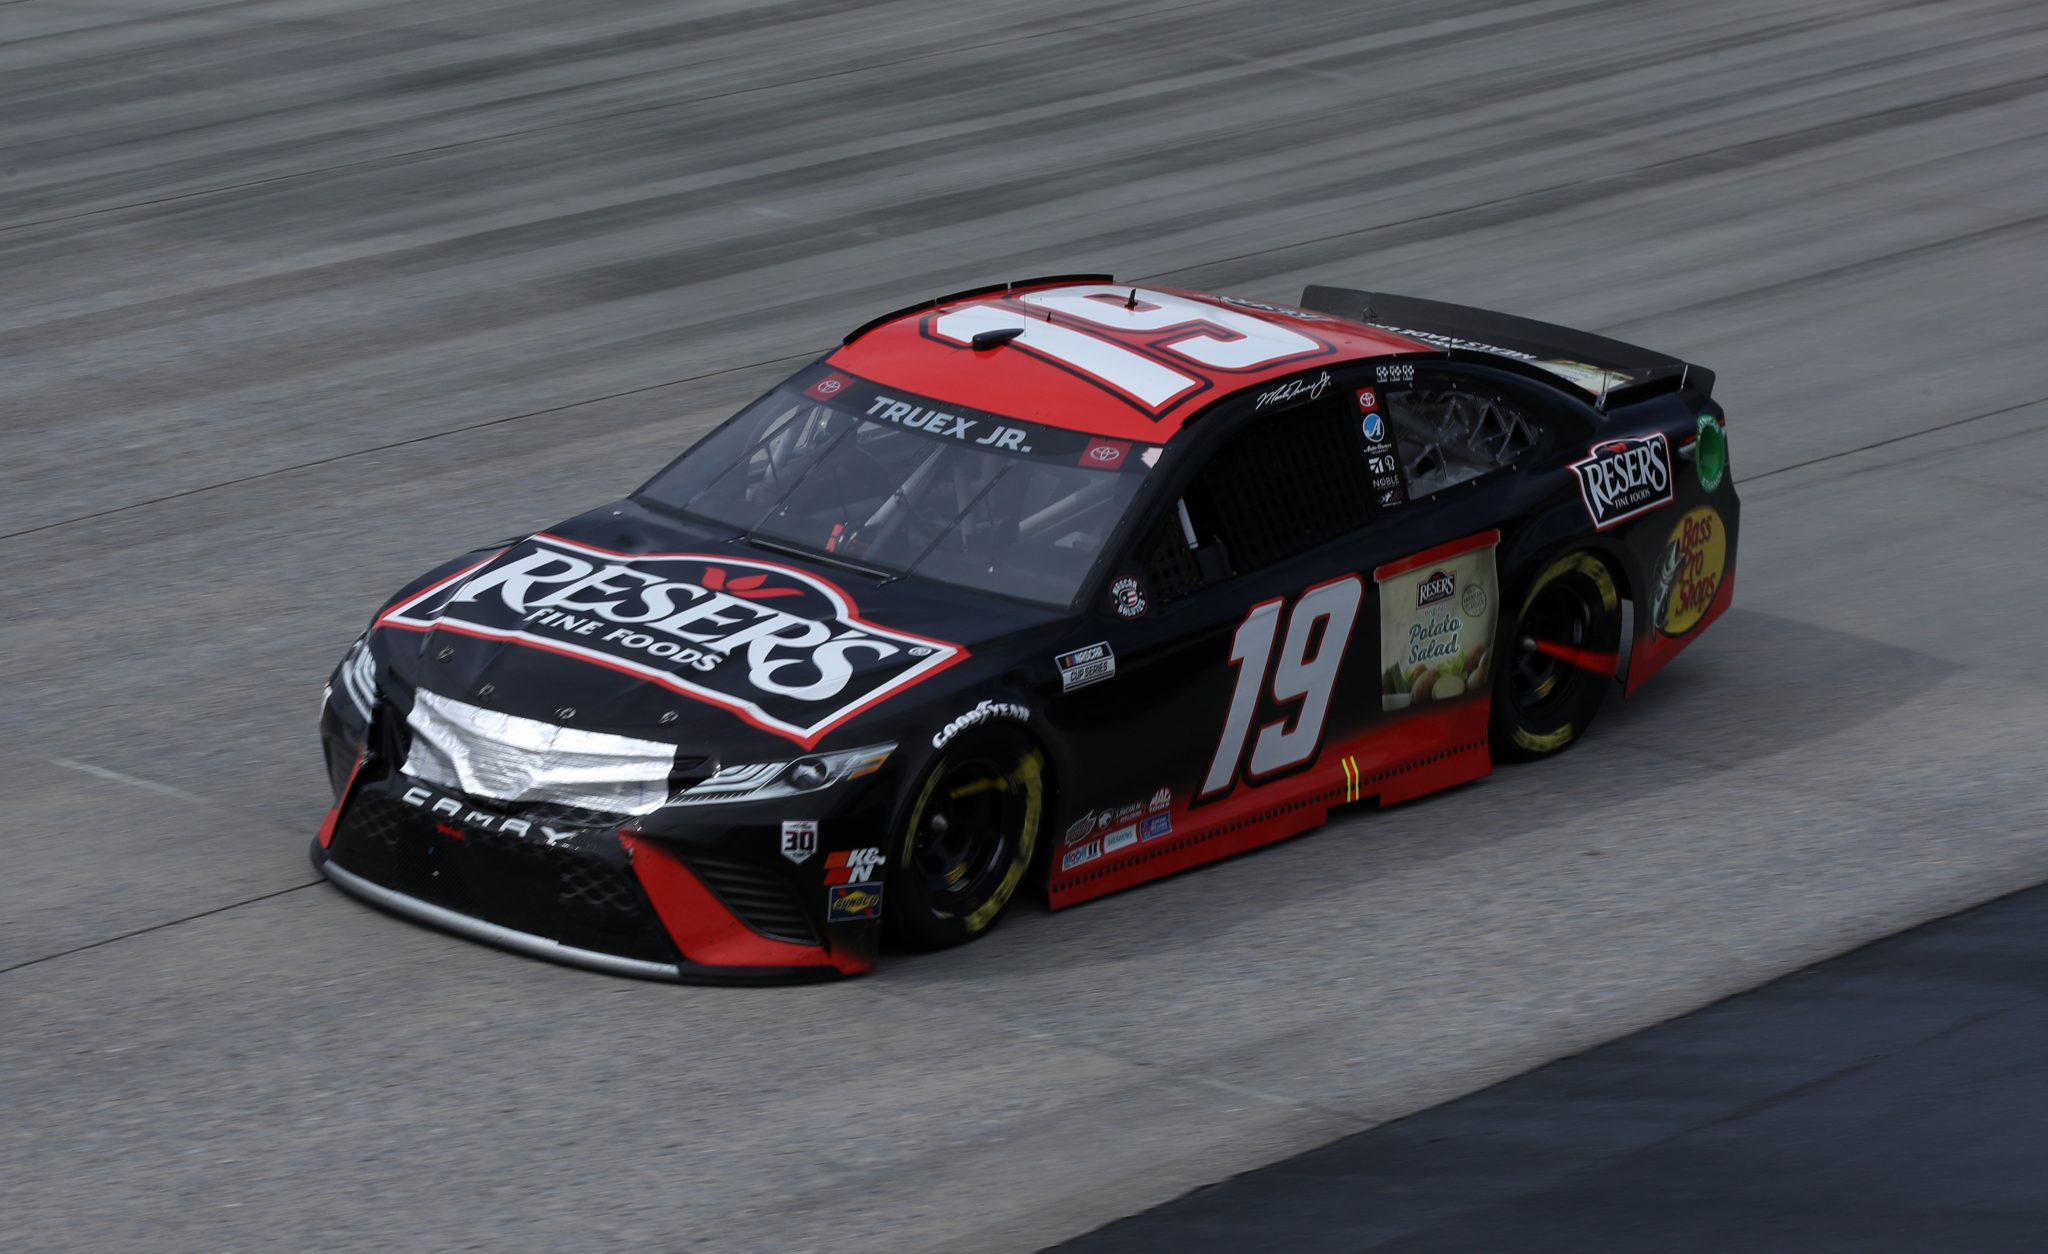 DOVER, DELAWARE - MAY 16: Martin Truex Jr., driver of the #19 Reser's Fine Foods Toyota, races during the NASCAR Cup Series Drydene 400 at Dover International Speedway on May 16, 2021 in Dover, Delaware. (Photo by Sean Gardner/Getty Images) | Getty Images